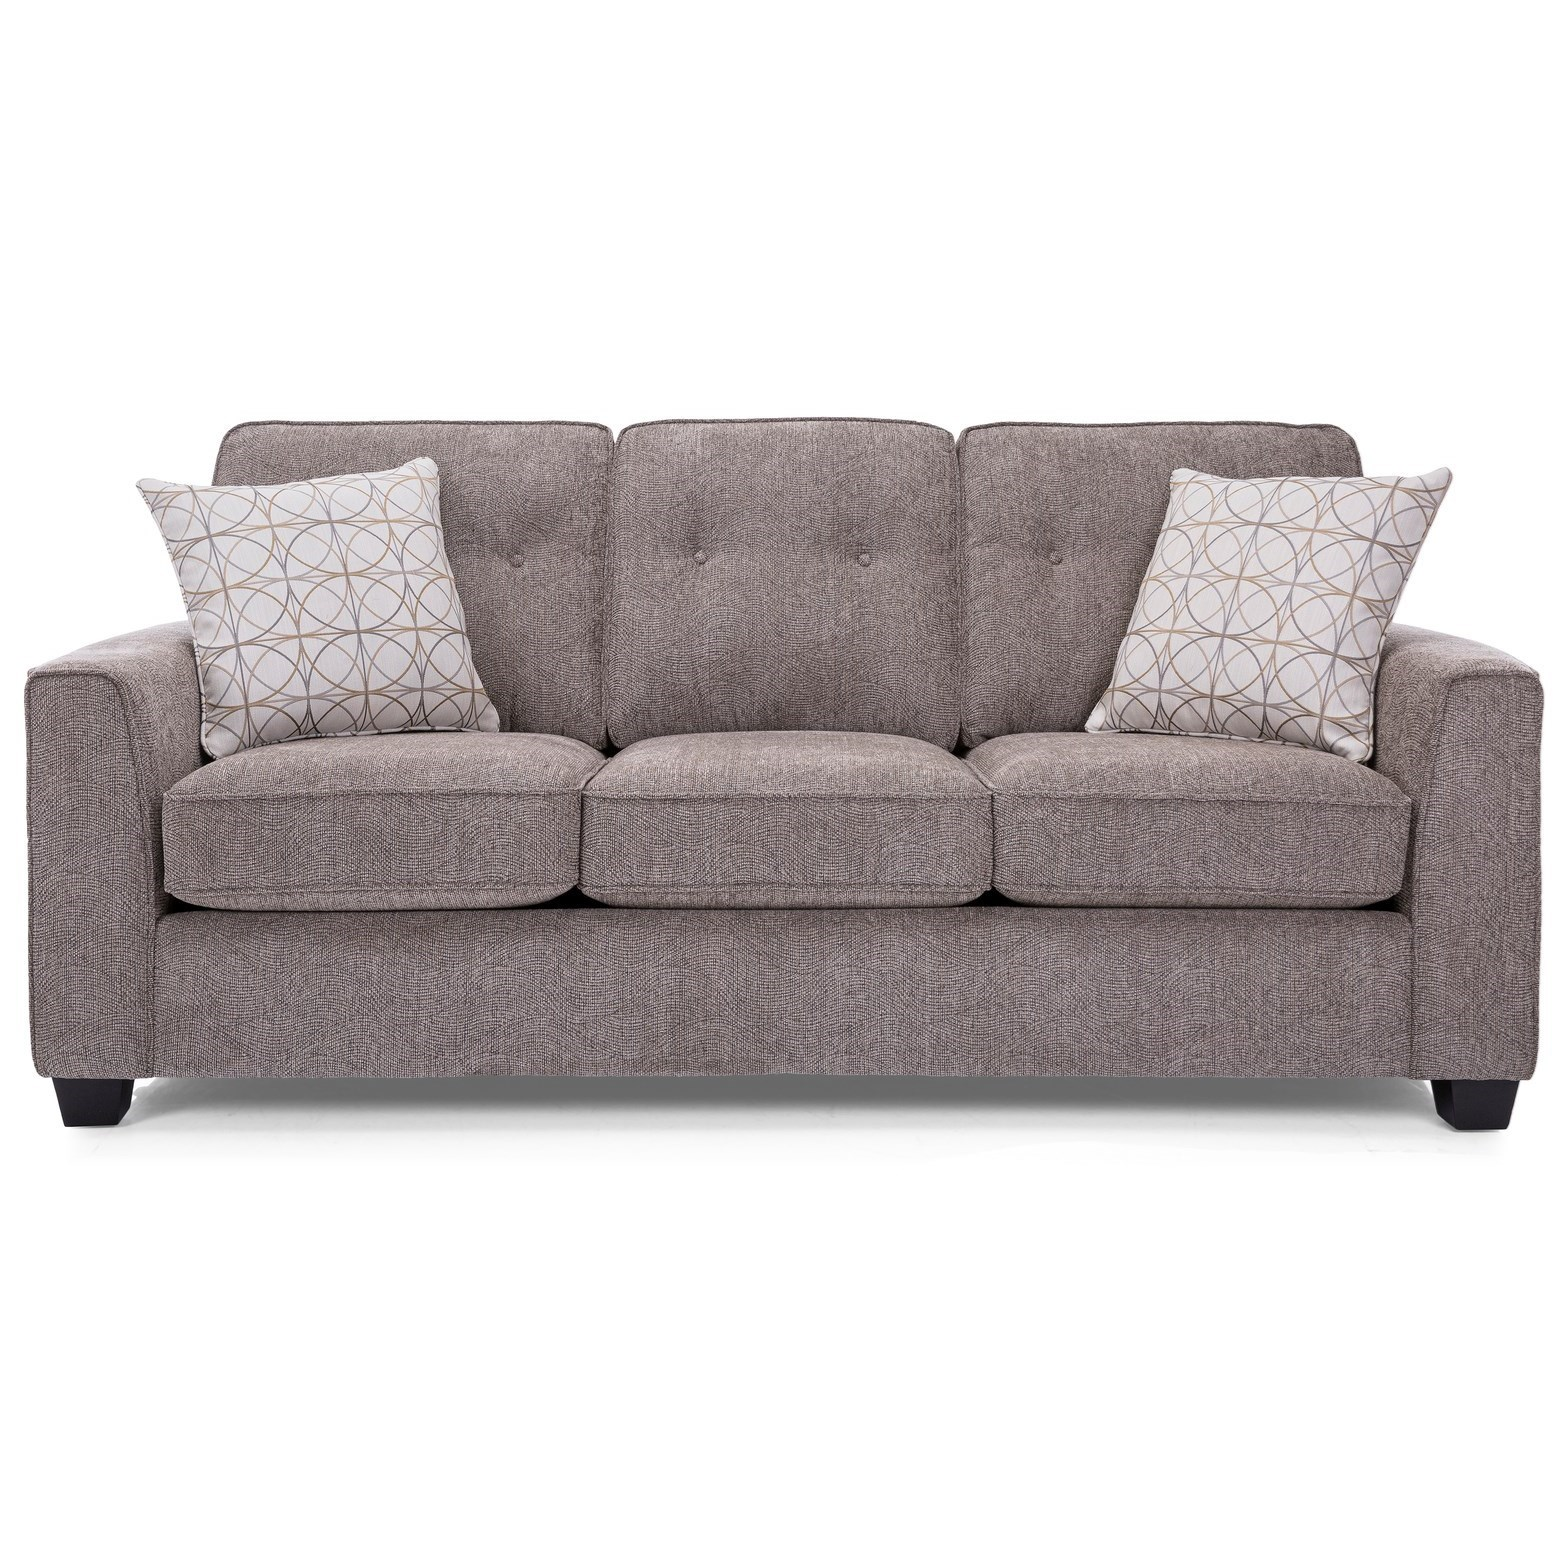 2967 Sofa by Decor-Rest at Reid's Furniture